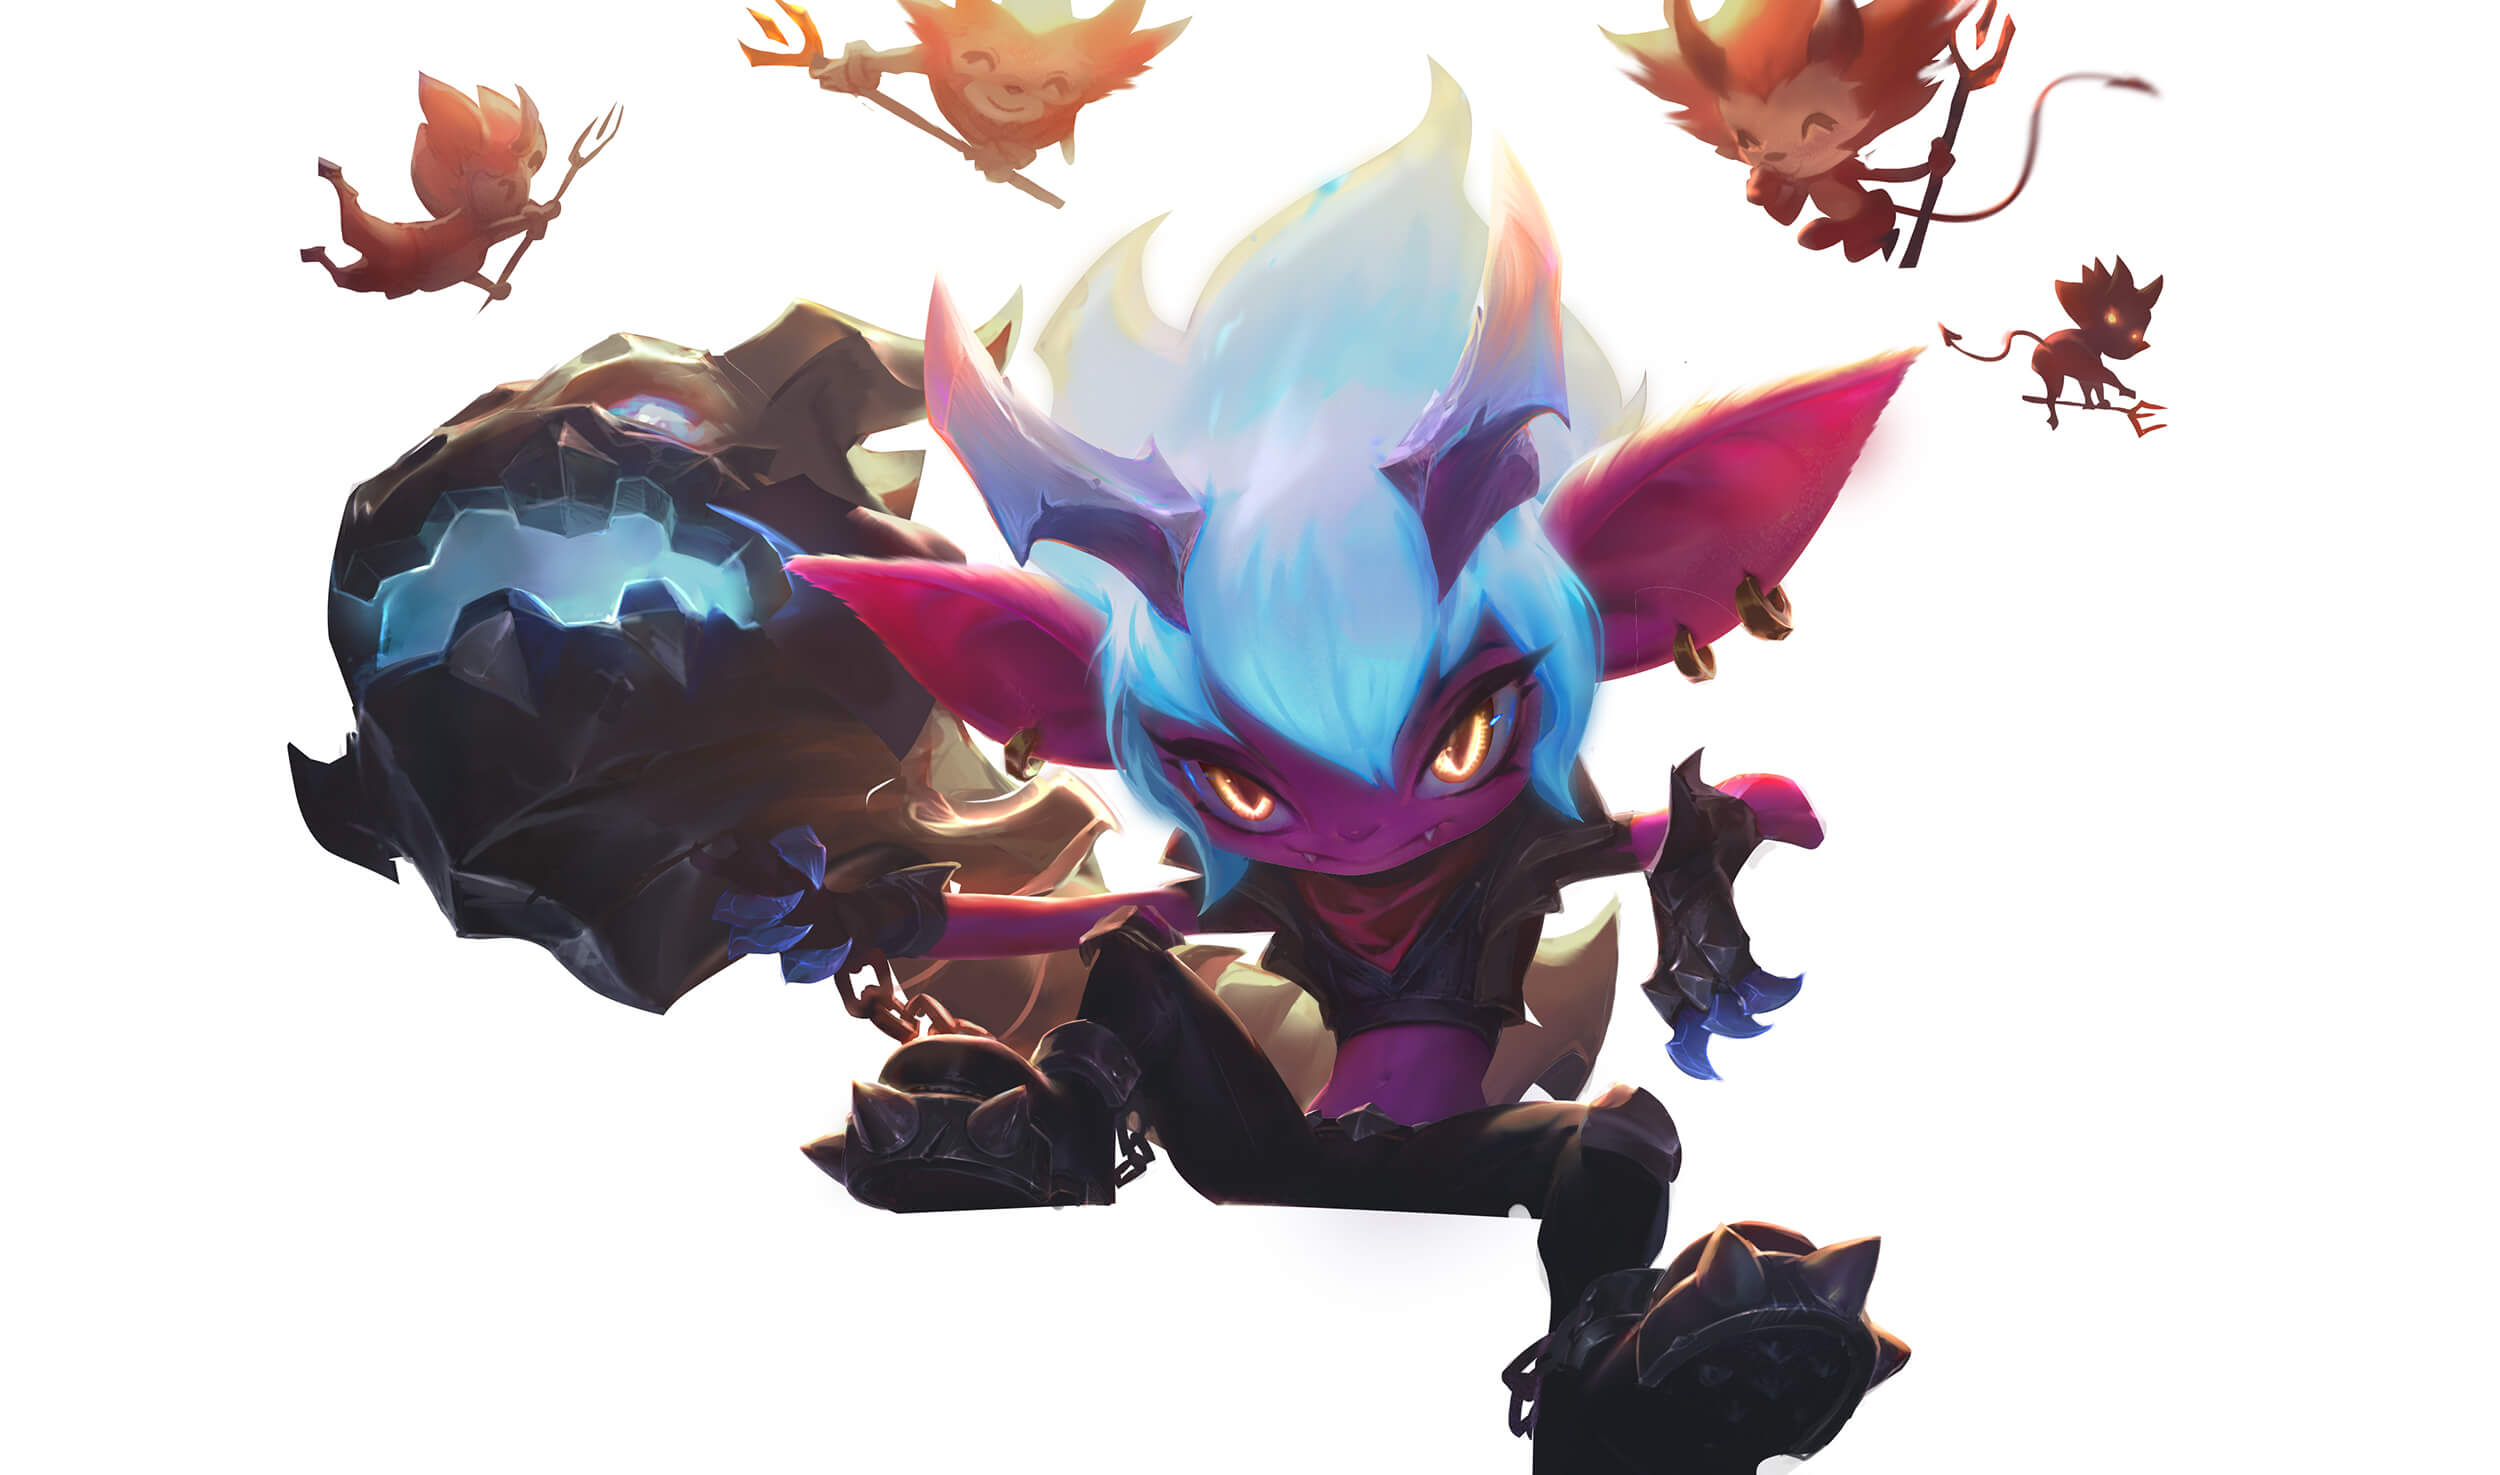 05_Tristana_Masks_No_Background_4l4l6rb2j9qo22odkztn.jpg - 159.43 kb